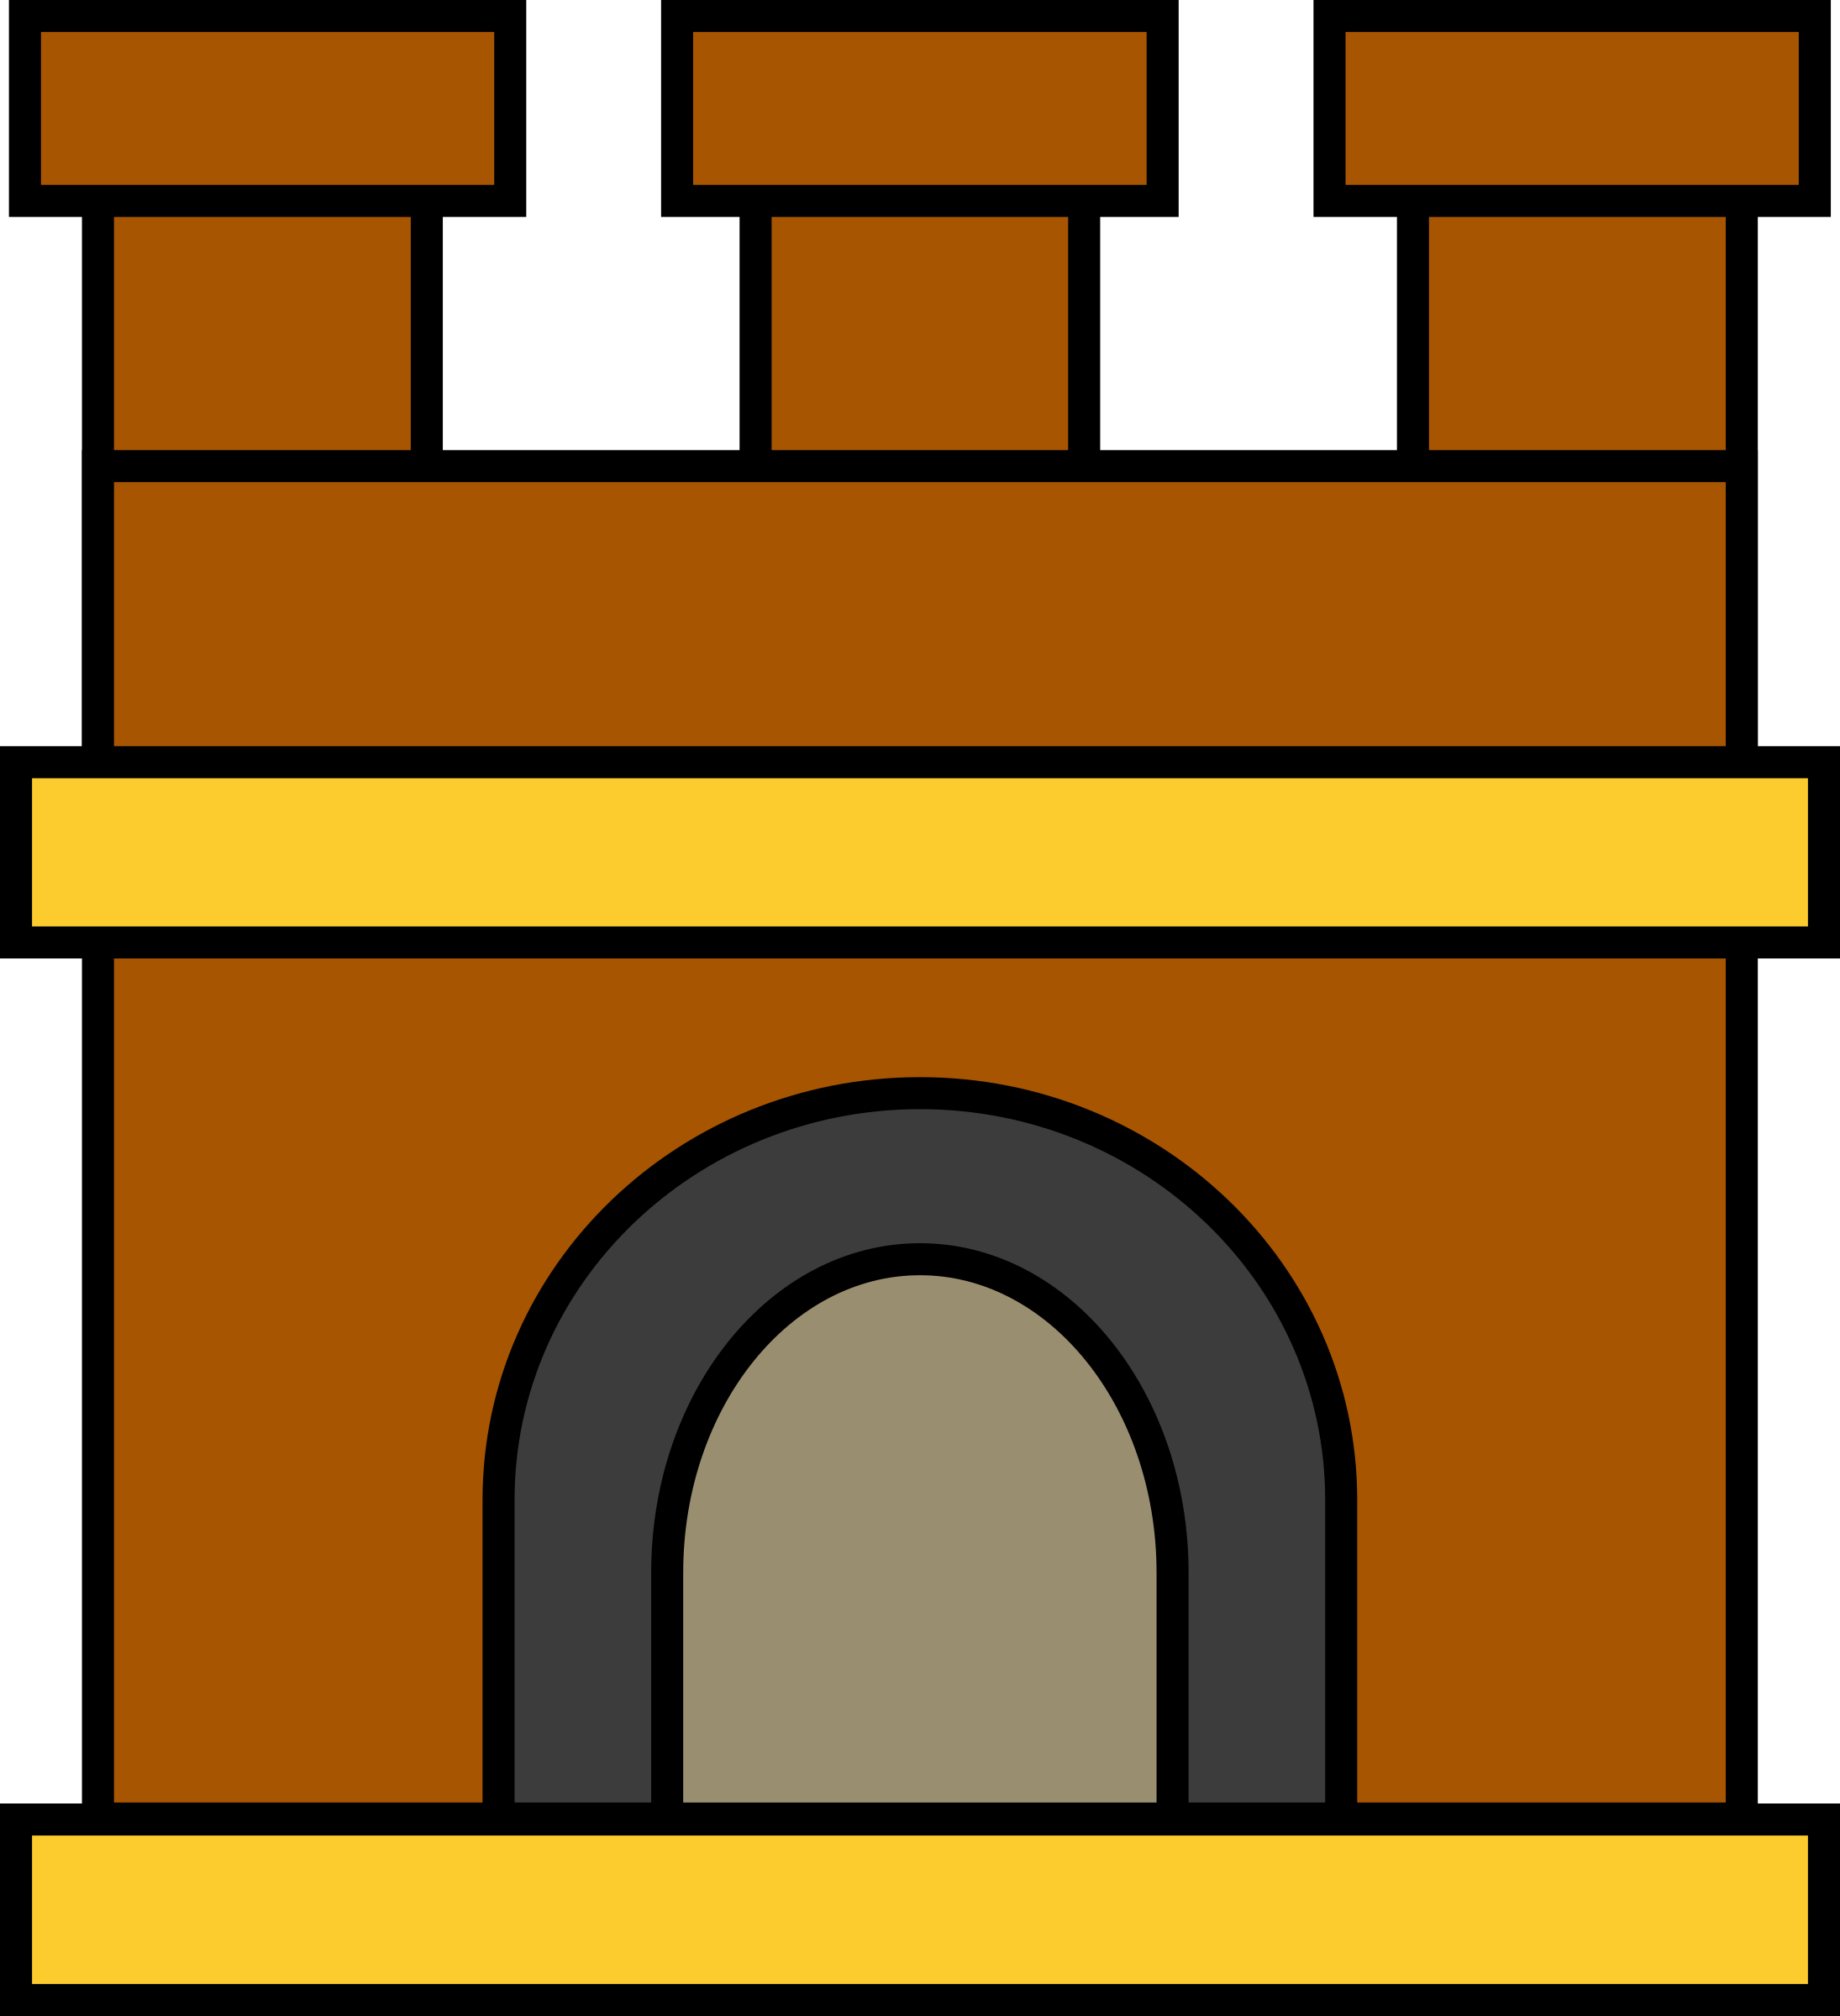 Castle keep by Firkin